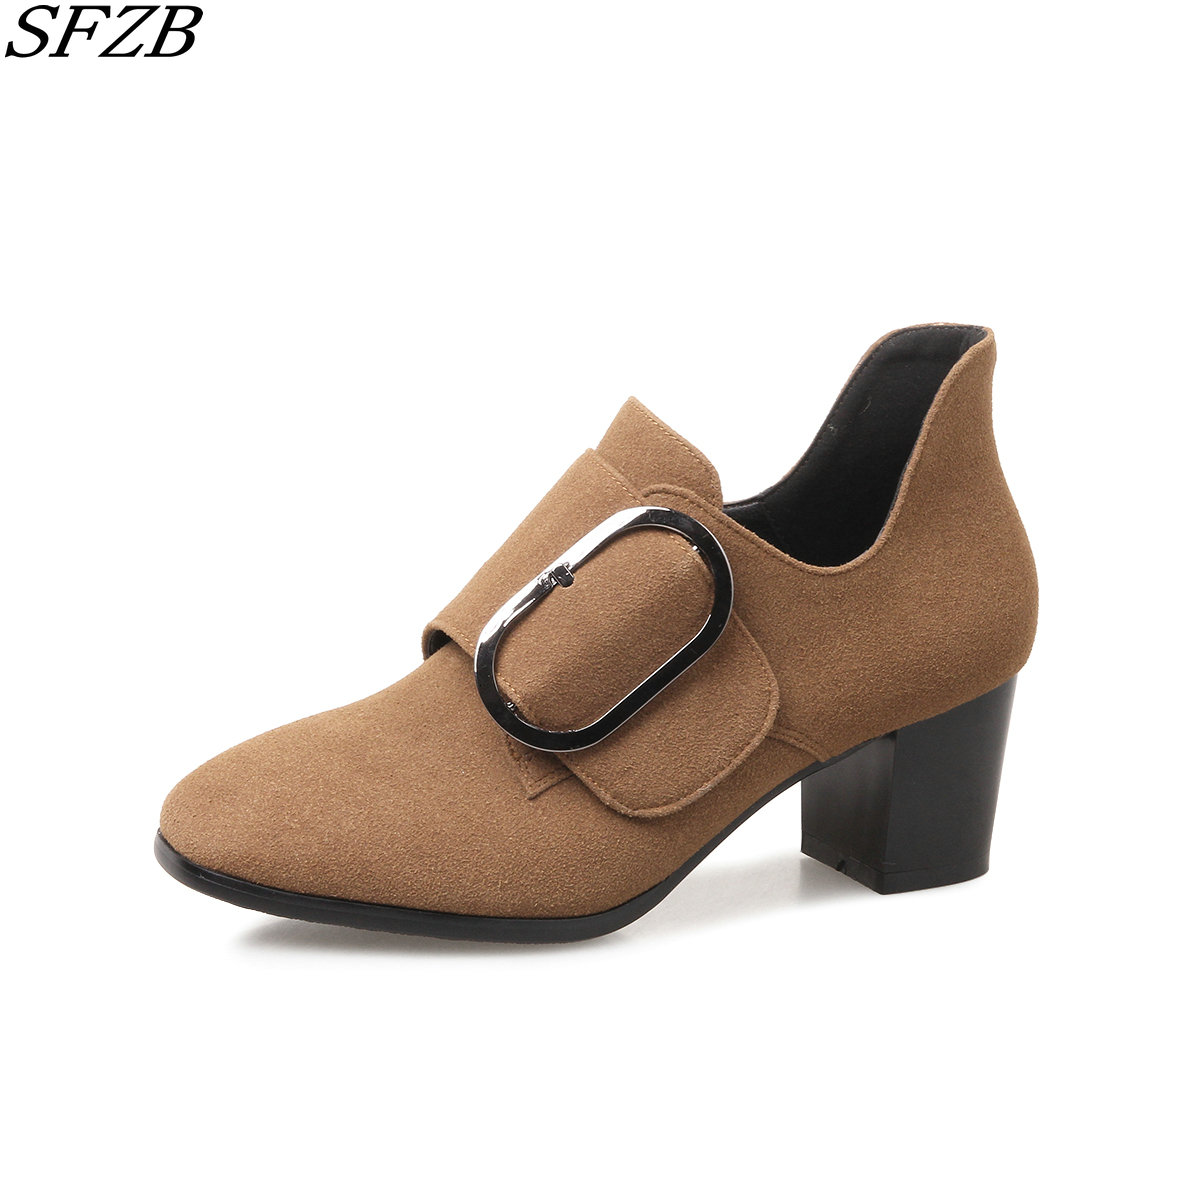 SFZB woman flock casual pumps new come round toe cheap shoes ladies spring outside british style women shoes high heels pumps xiaying smile woman pumps shoes women spring autumn wedges heels british style classics round toe lace up thick sole women shoes